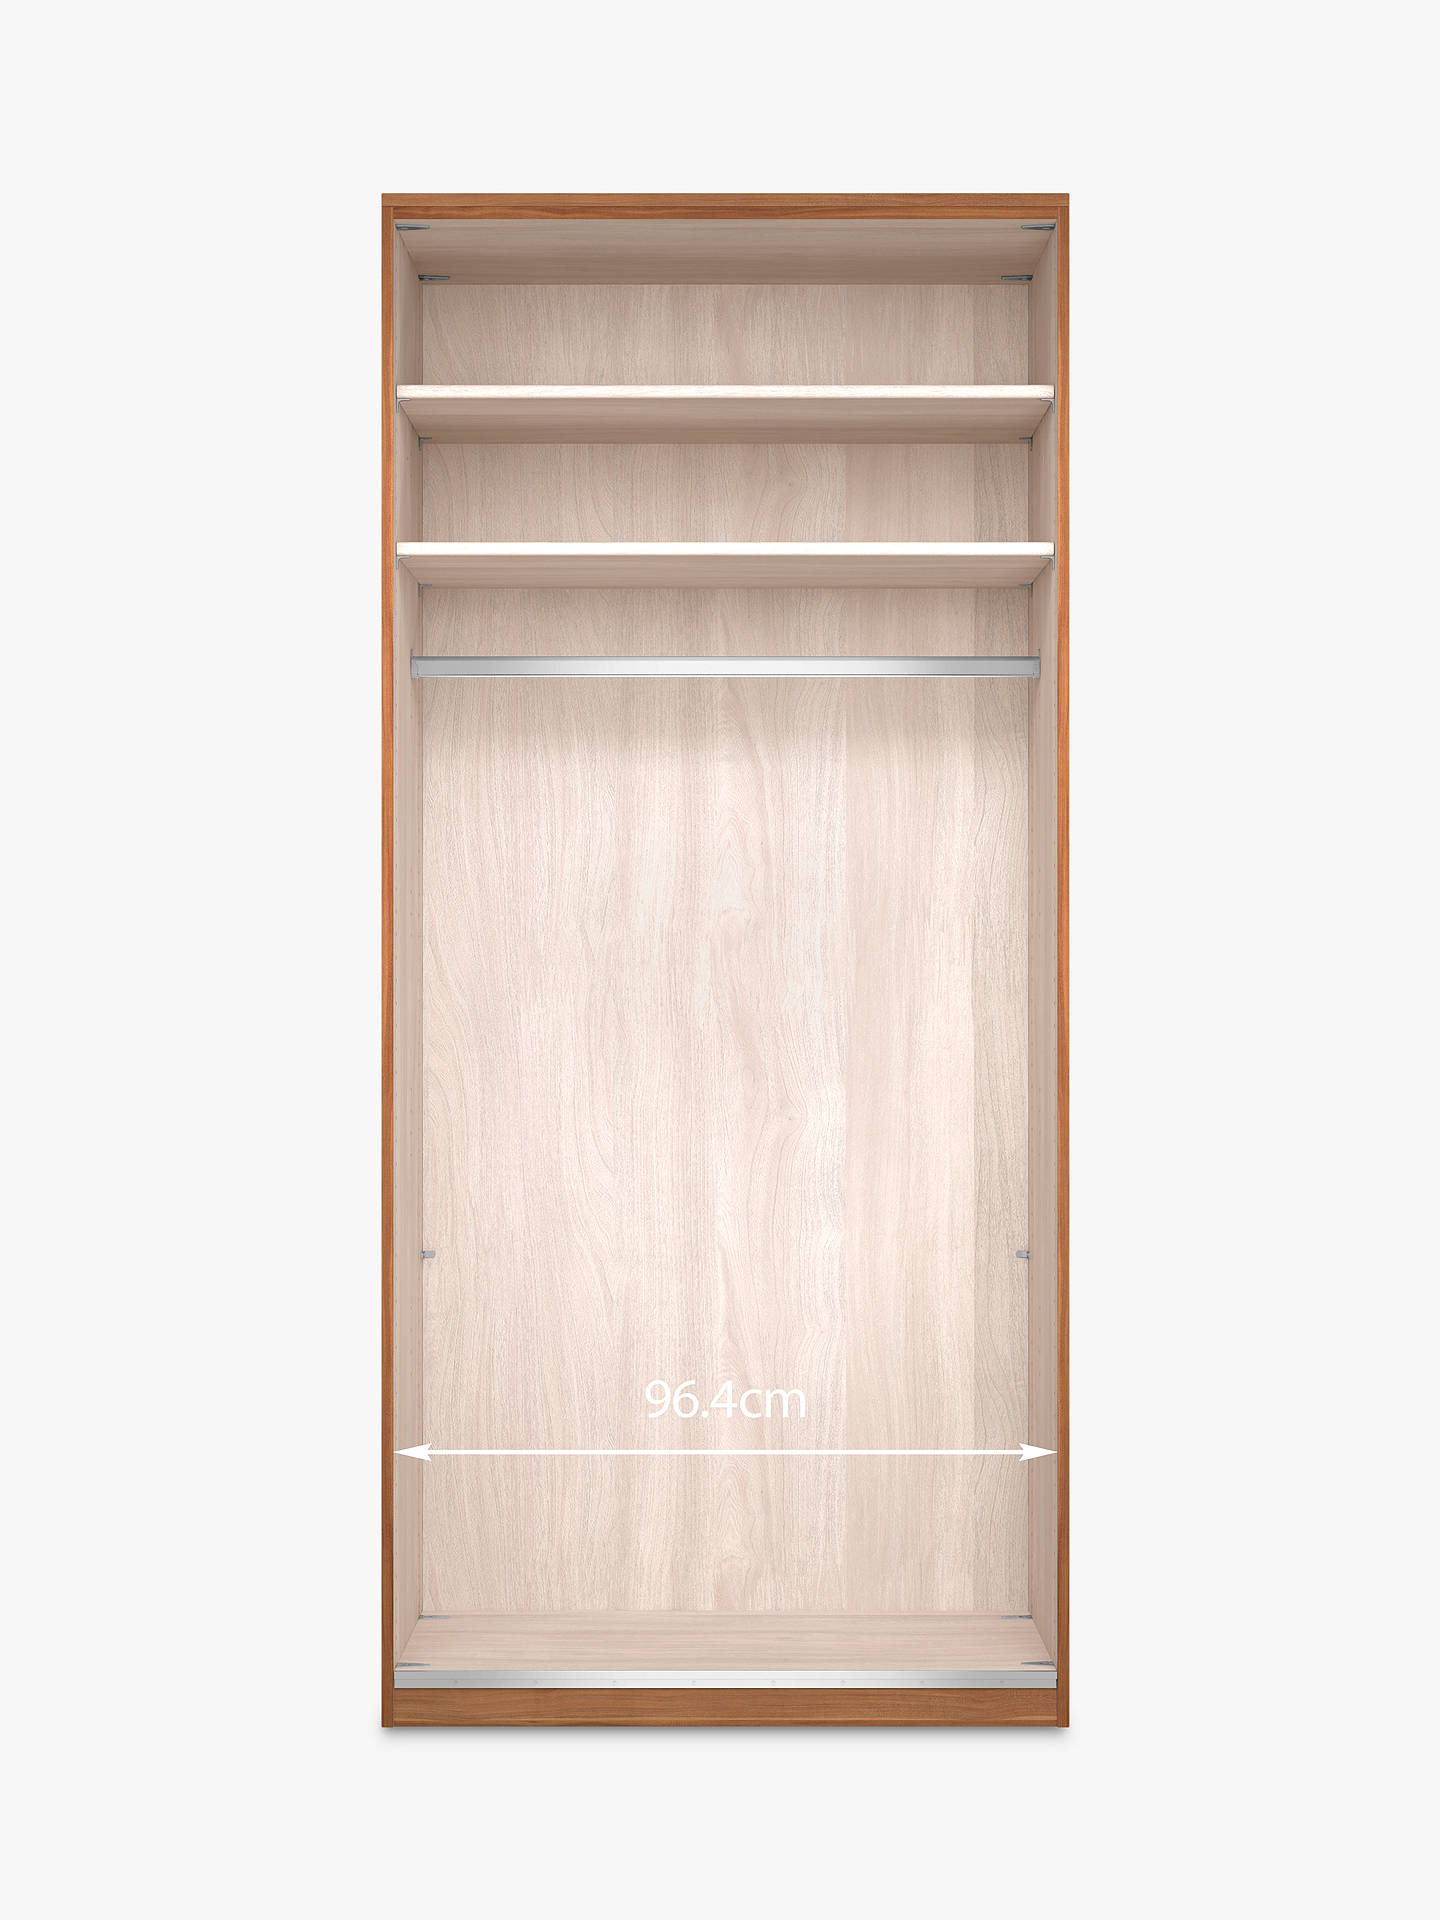 Buy John Lewis & Partners Elstra 100cm Wardrobe with Glass Hinged Doors, White Glass/Light Rustic Oak Online at johnlewis.com